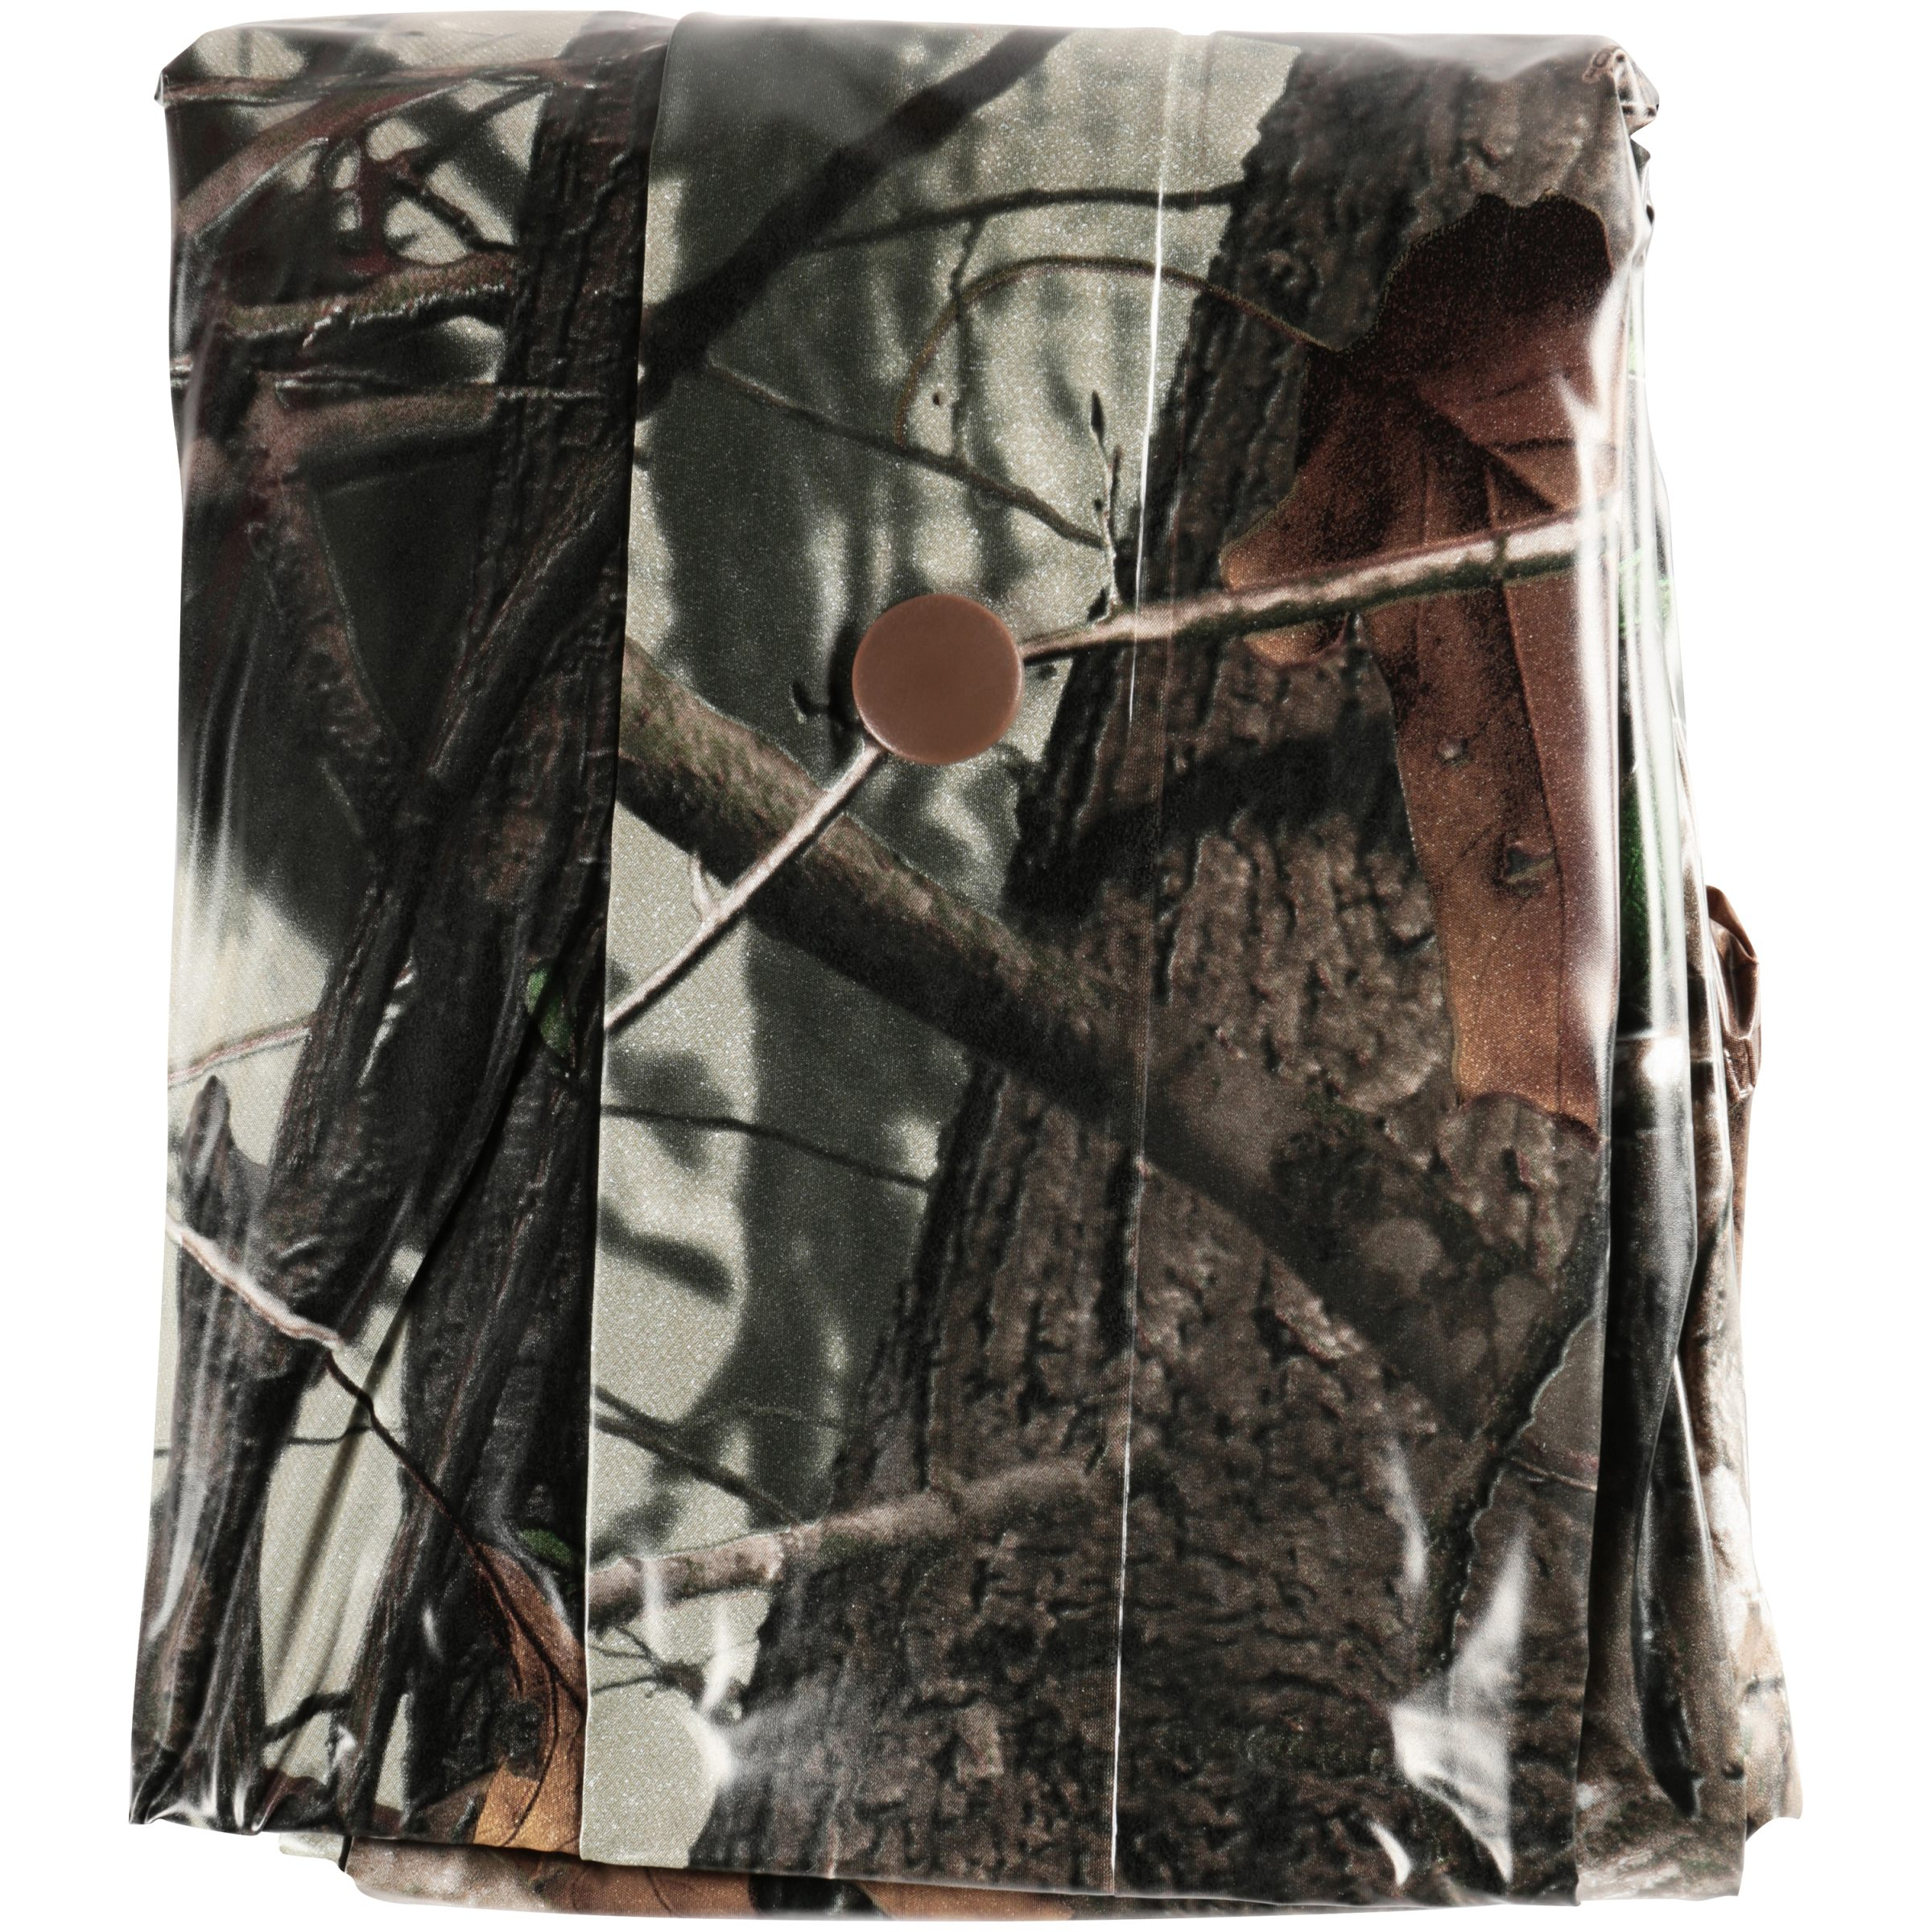 # 515A XL/2XL Camo Rain Suit 2 pc Pack